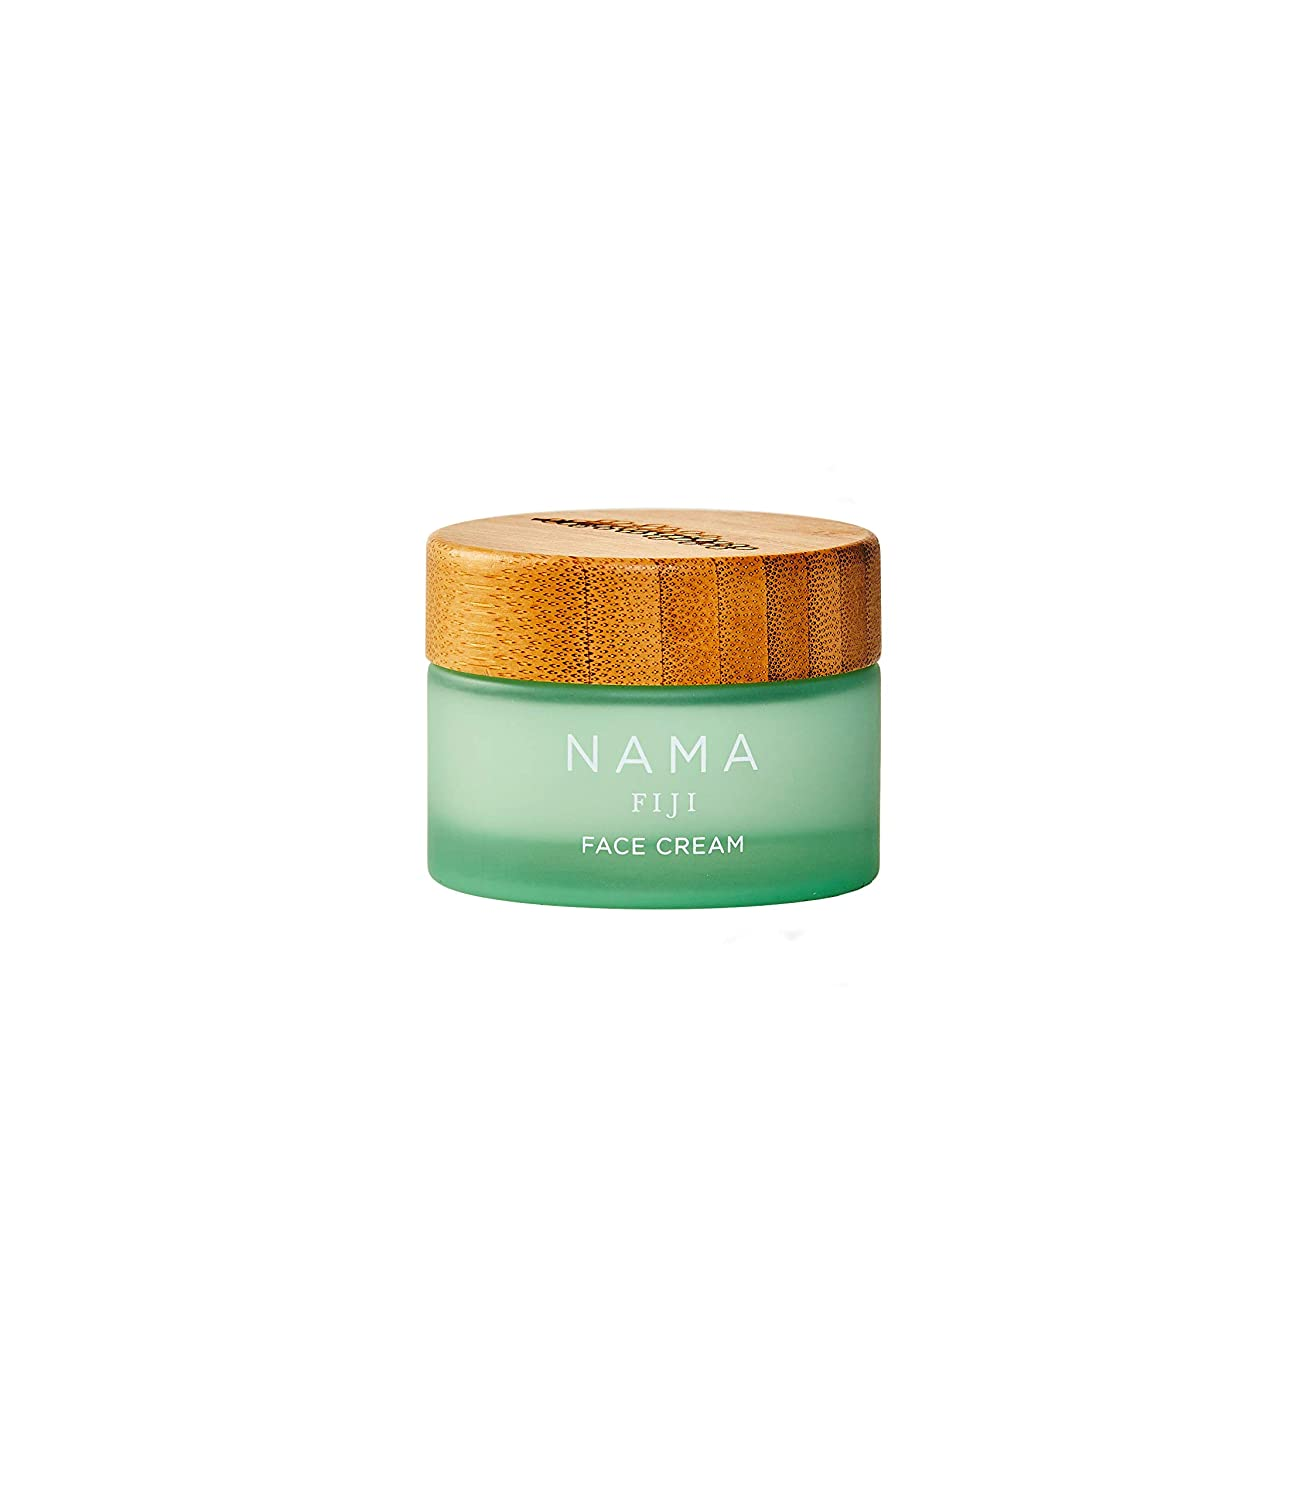 Professional Spa Face Cream by Nama Fiji with 100% Wild Nama Sea Grapes, Vitamin E & Evening Primrose Oil for hydrating, anti-inflammatory and soothing benefits to calm redness, 1.76 oz